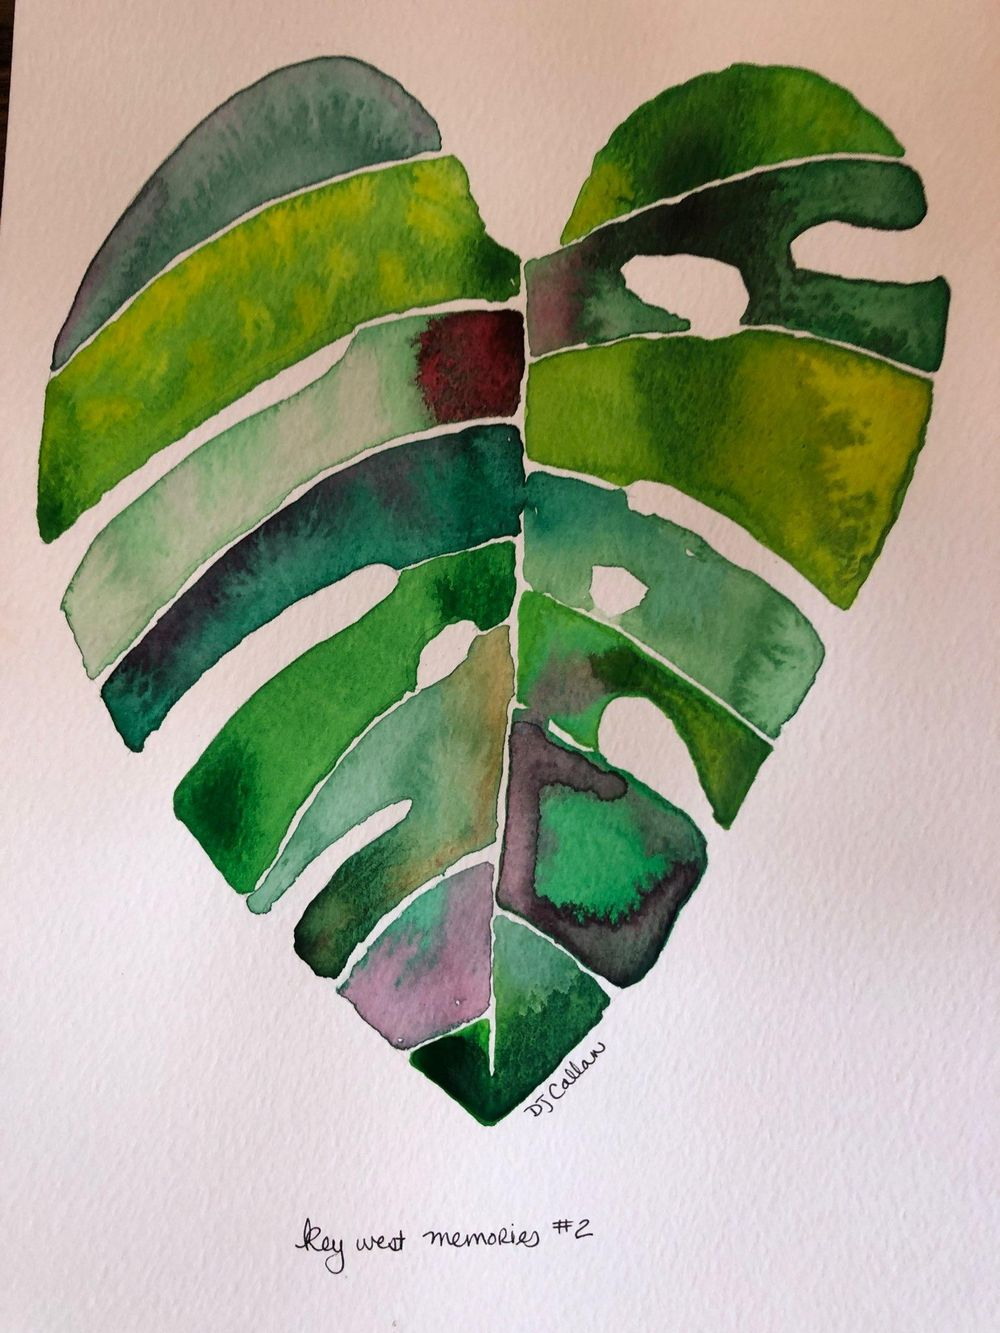 Modern Botanical Watercolors - What a Blast! - image 2 - student project